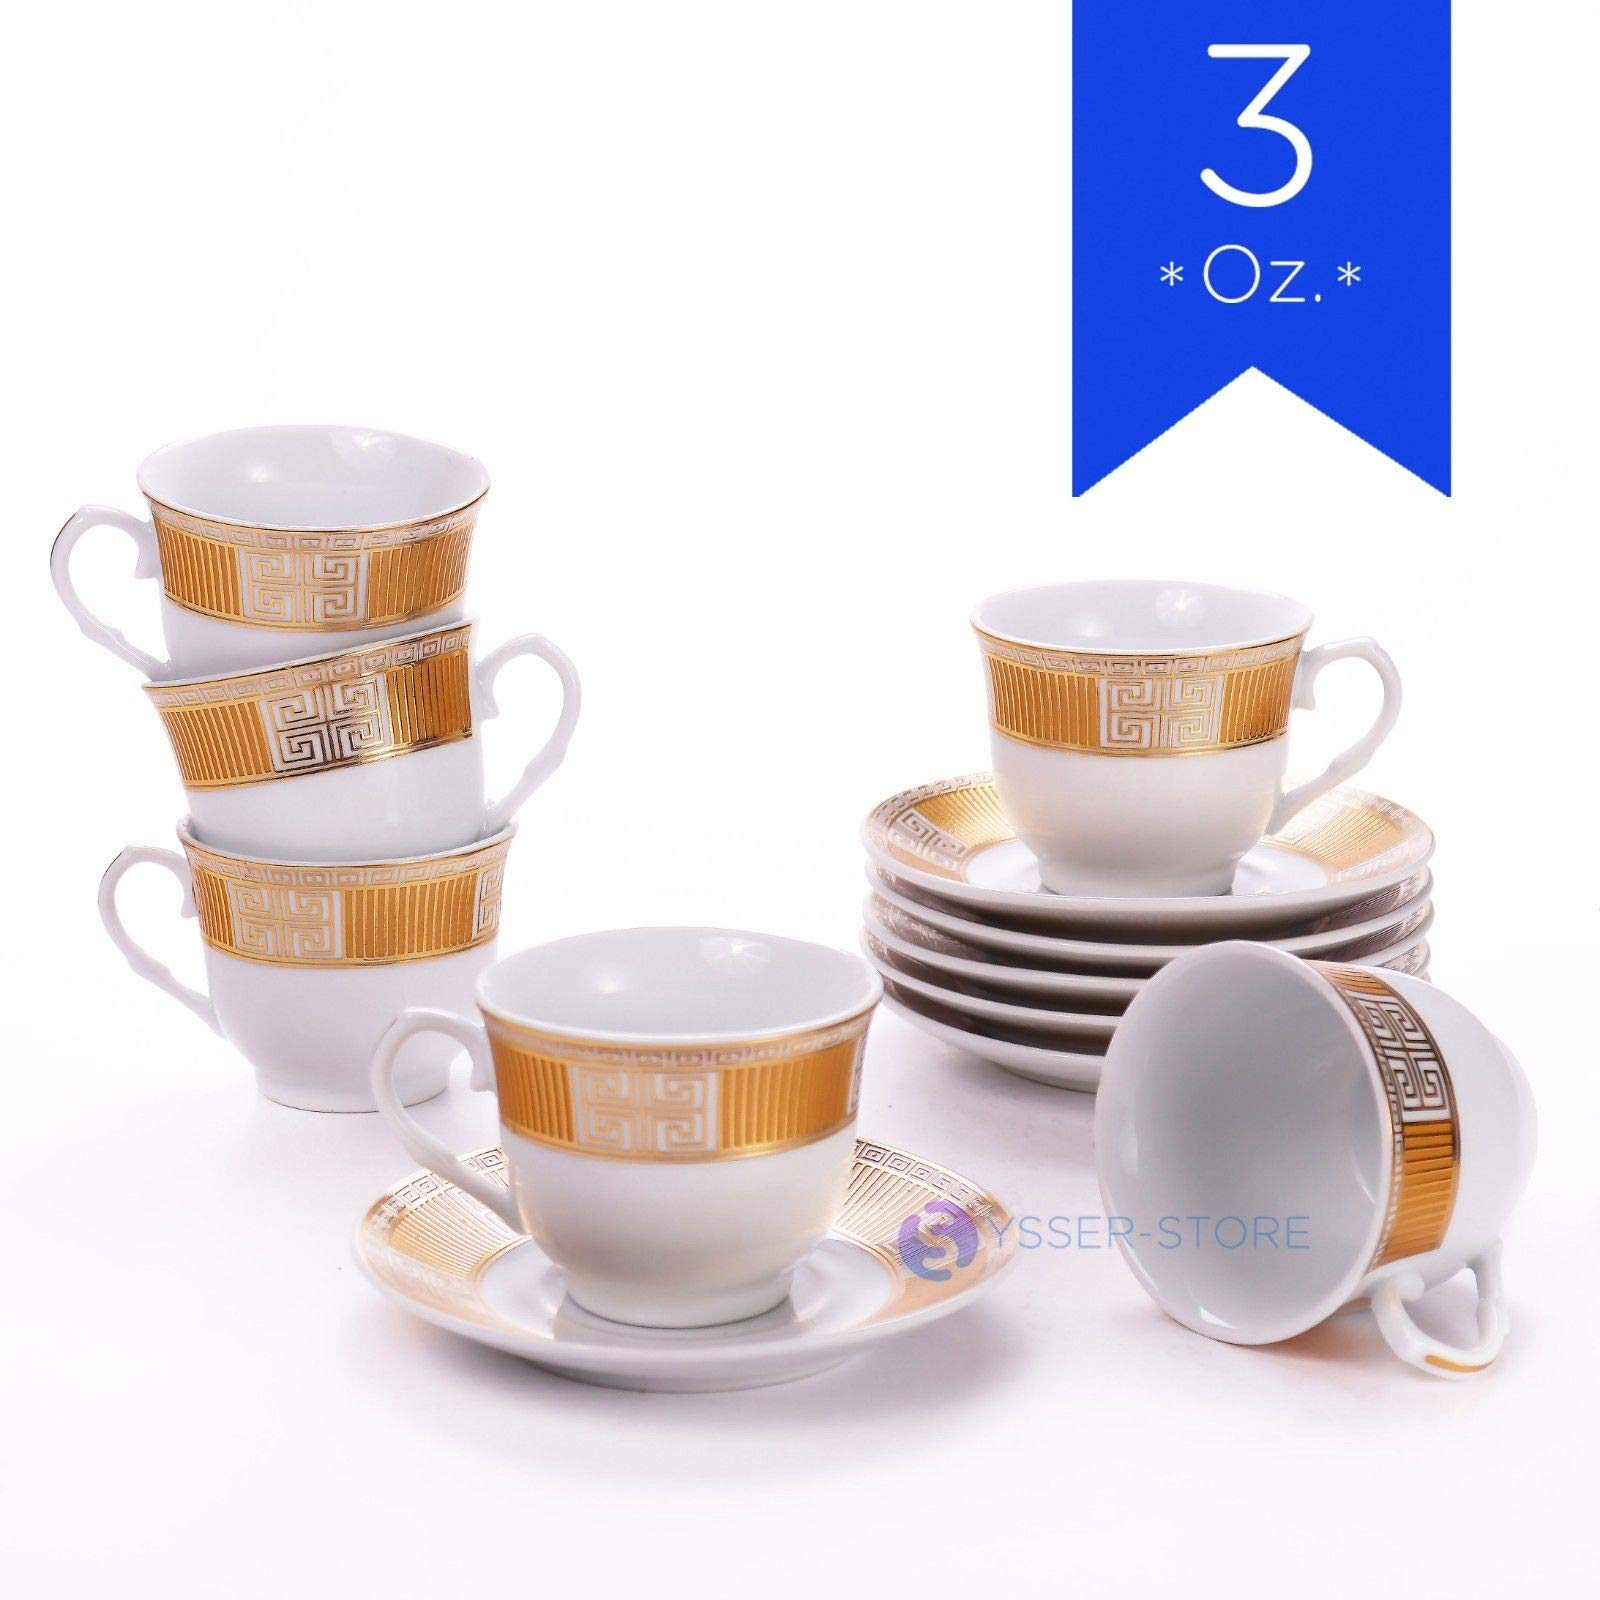 Tuweep Luxury Espresso Coffee Set 6 Cups 6 Saucers 3 oz White Porcelain in Gift Box New by Tuweep